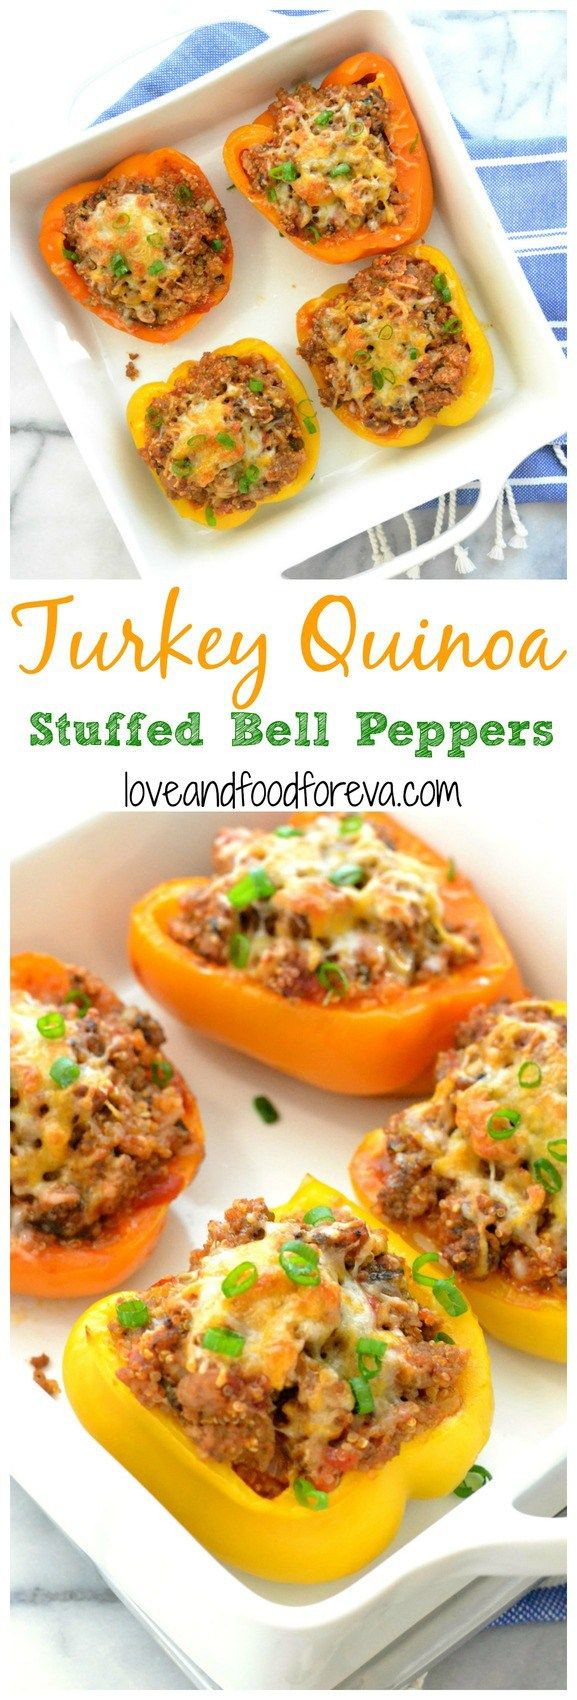 Turkey Quinoa Stuffed Bell Peppers Recipe Stuffed Peppers Recipes High Protein Recipes